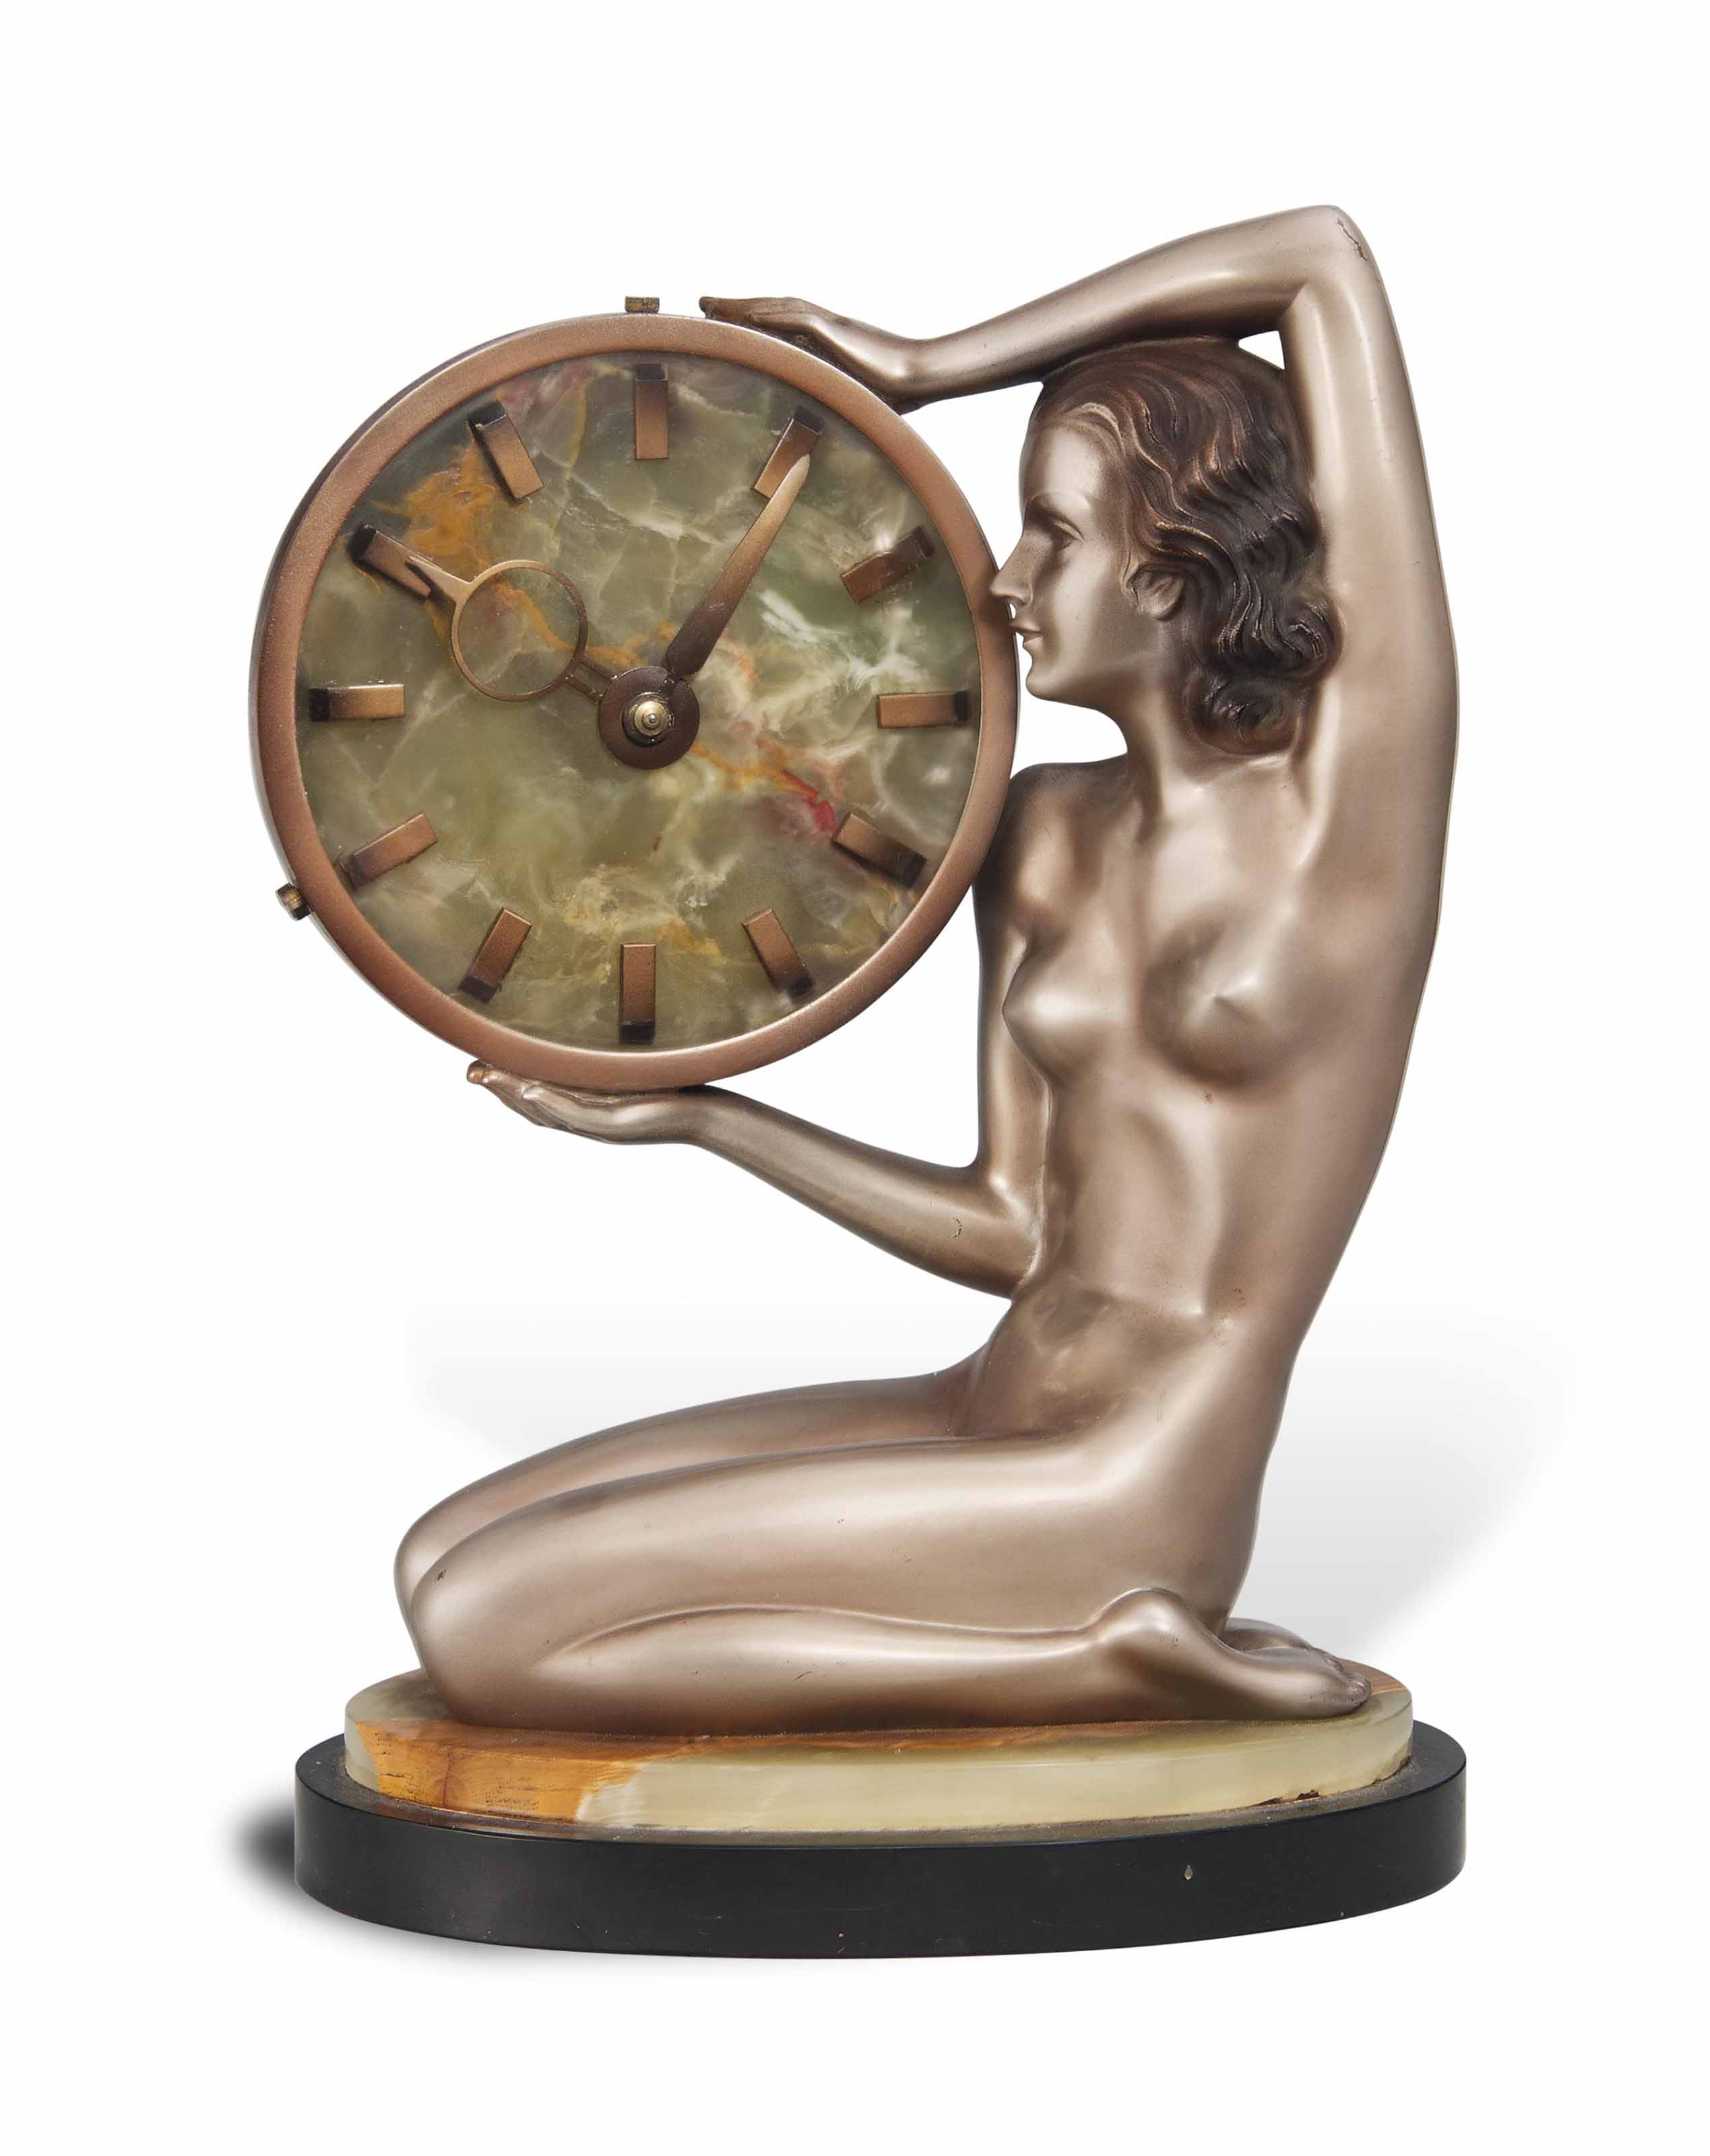 A JOSEF LORENZL (1892-1950) COLD-PAINTED BRONZE AND ONYX TIMEPIECE